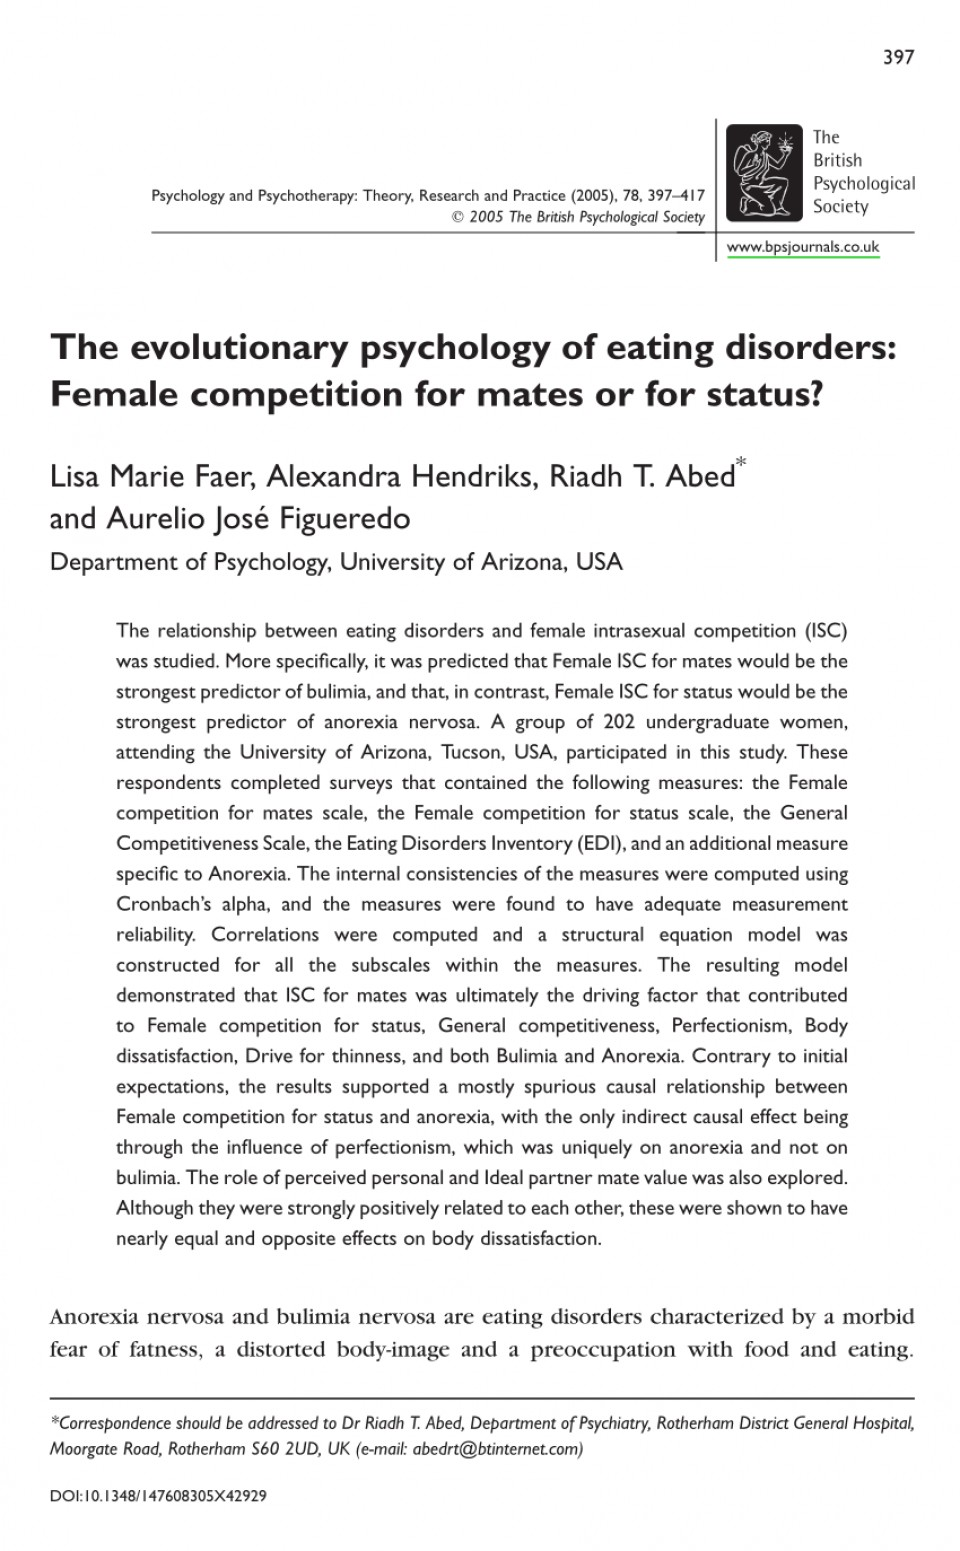 006 Psychology Research Paper On Eating Disorders Top Topics 960